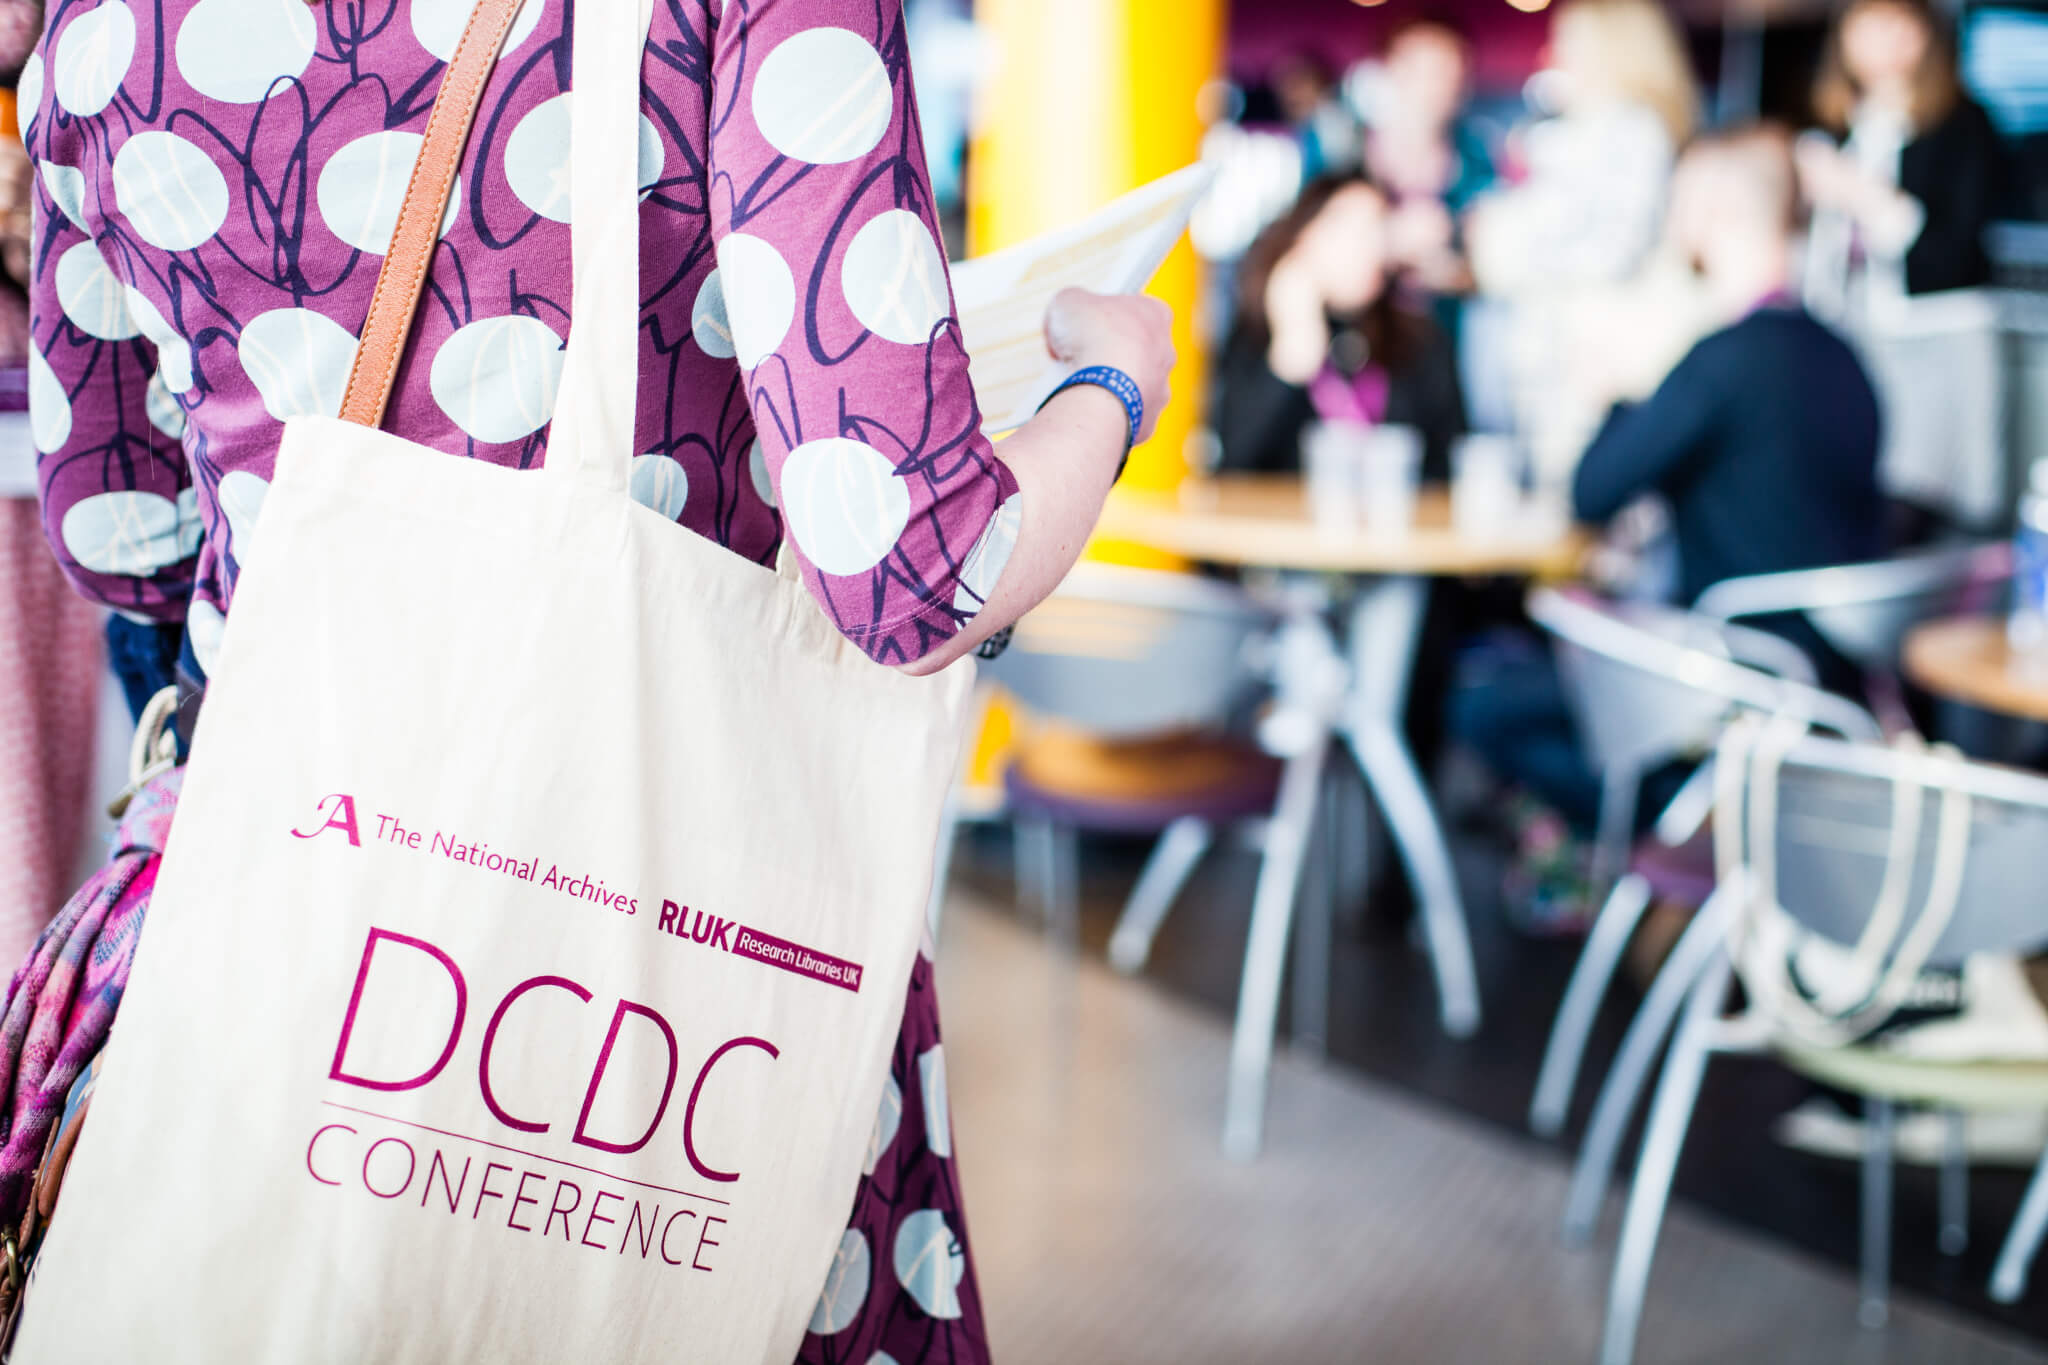 DCDC18: Memory and transformation